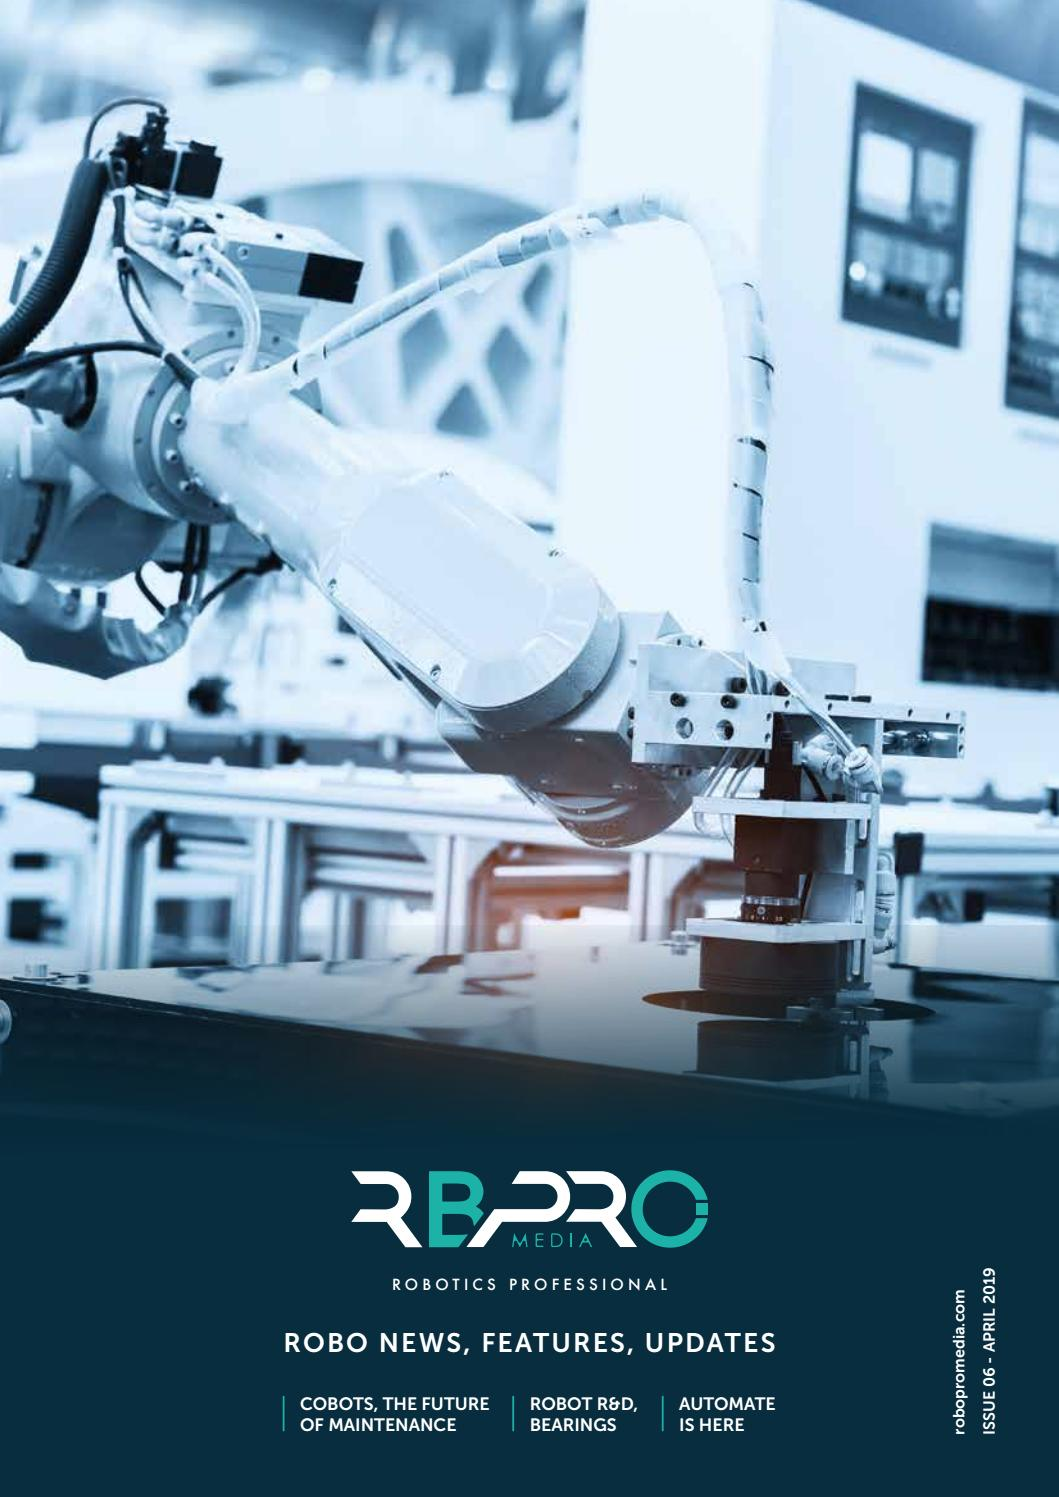 ROBO News, features  updates | ROBOPRO 06 | April 2019 by Clifton